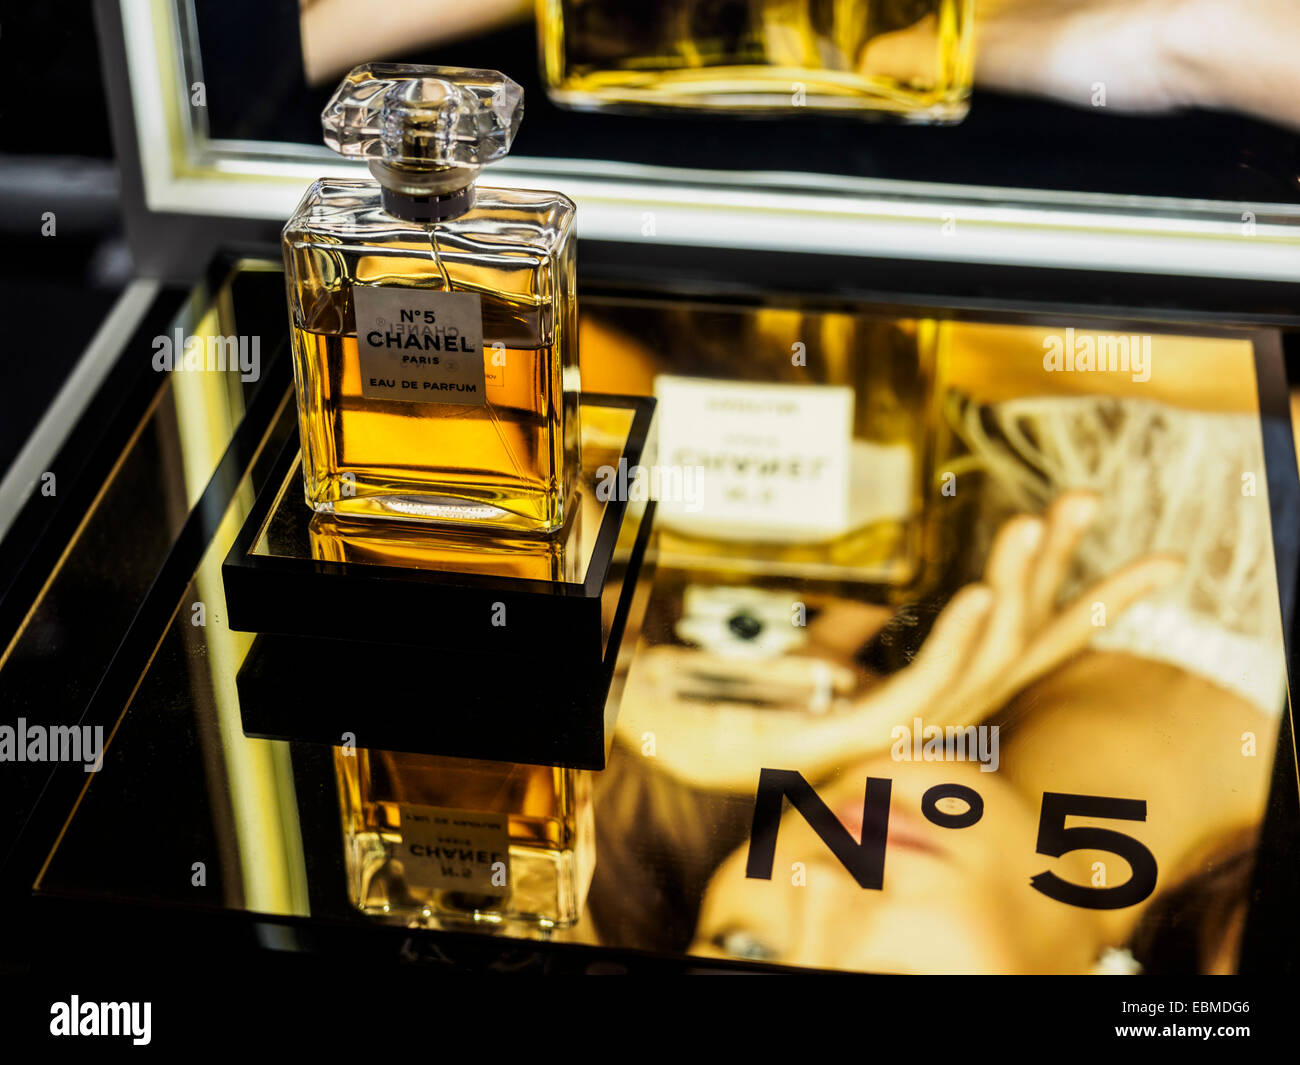 chanel number 5. chanel no 5 perfume bottle - stock image number